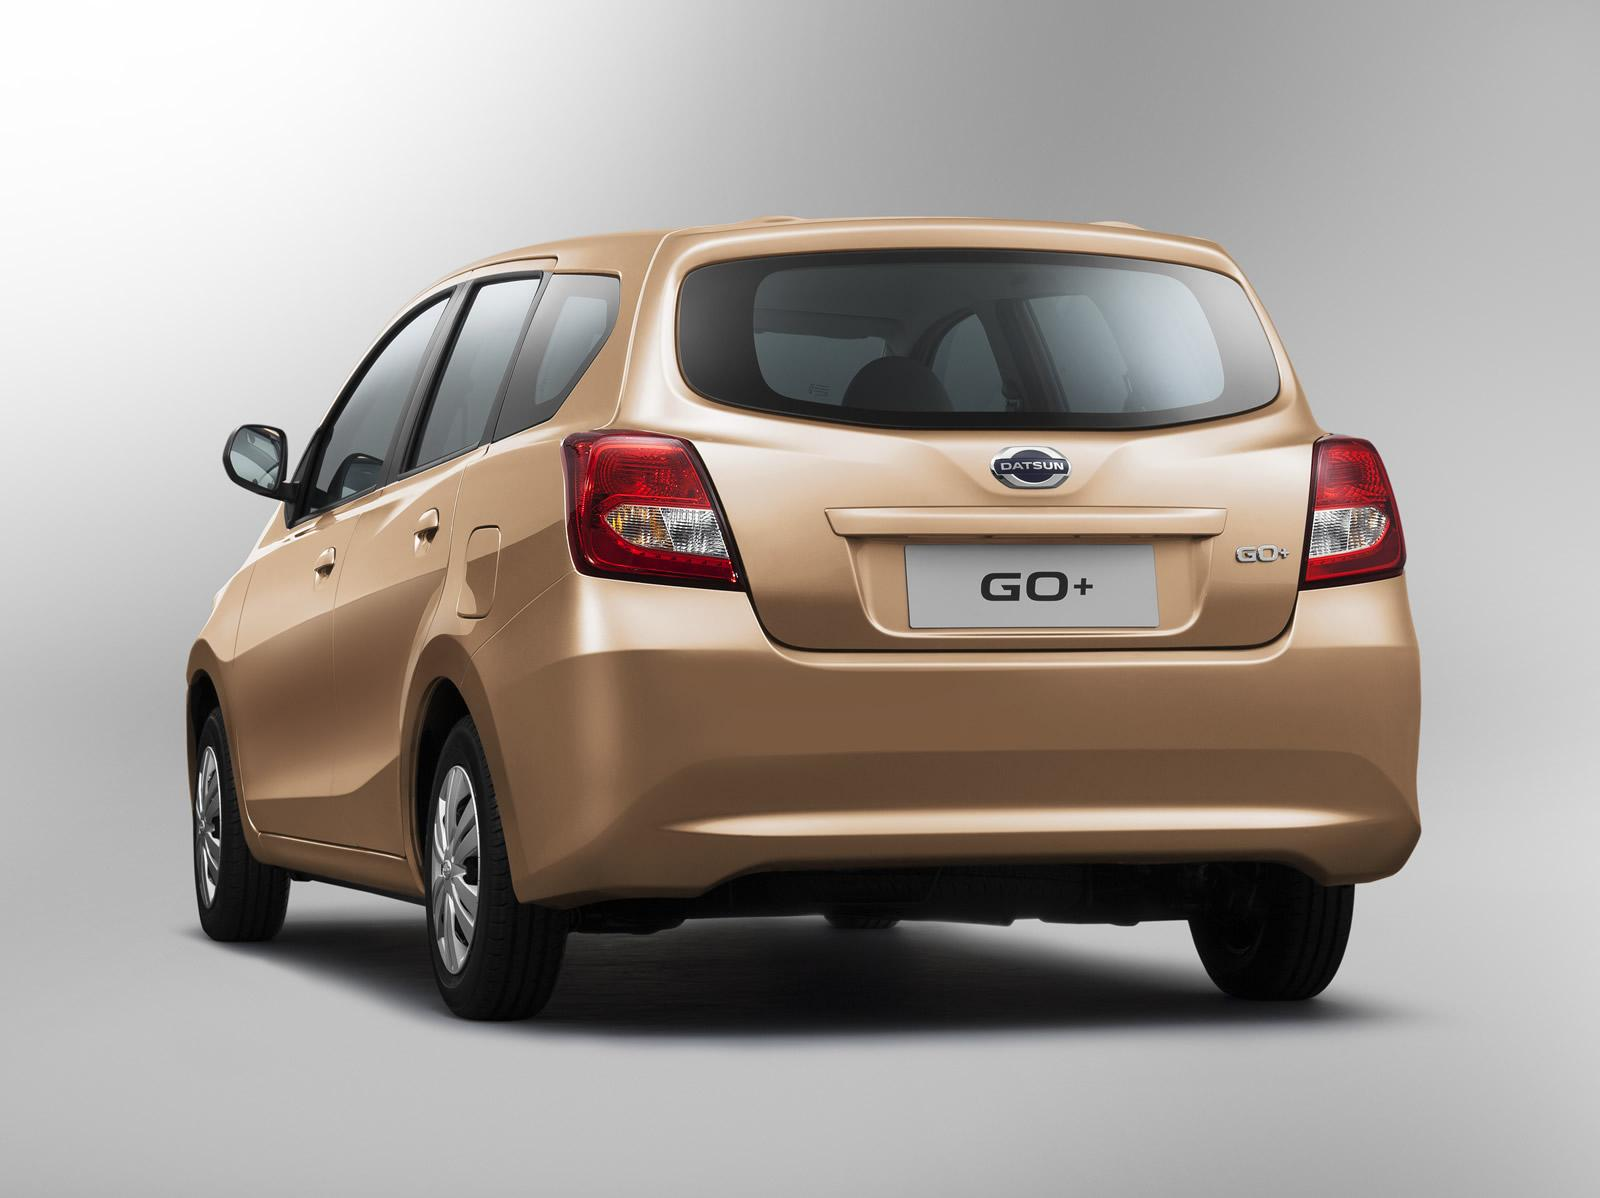 datsun go 7seater mpv datsun�s second model in india